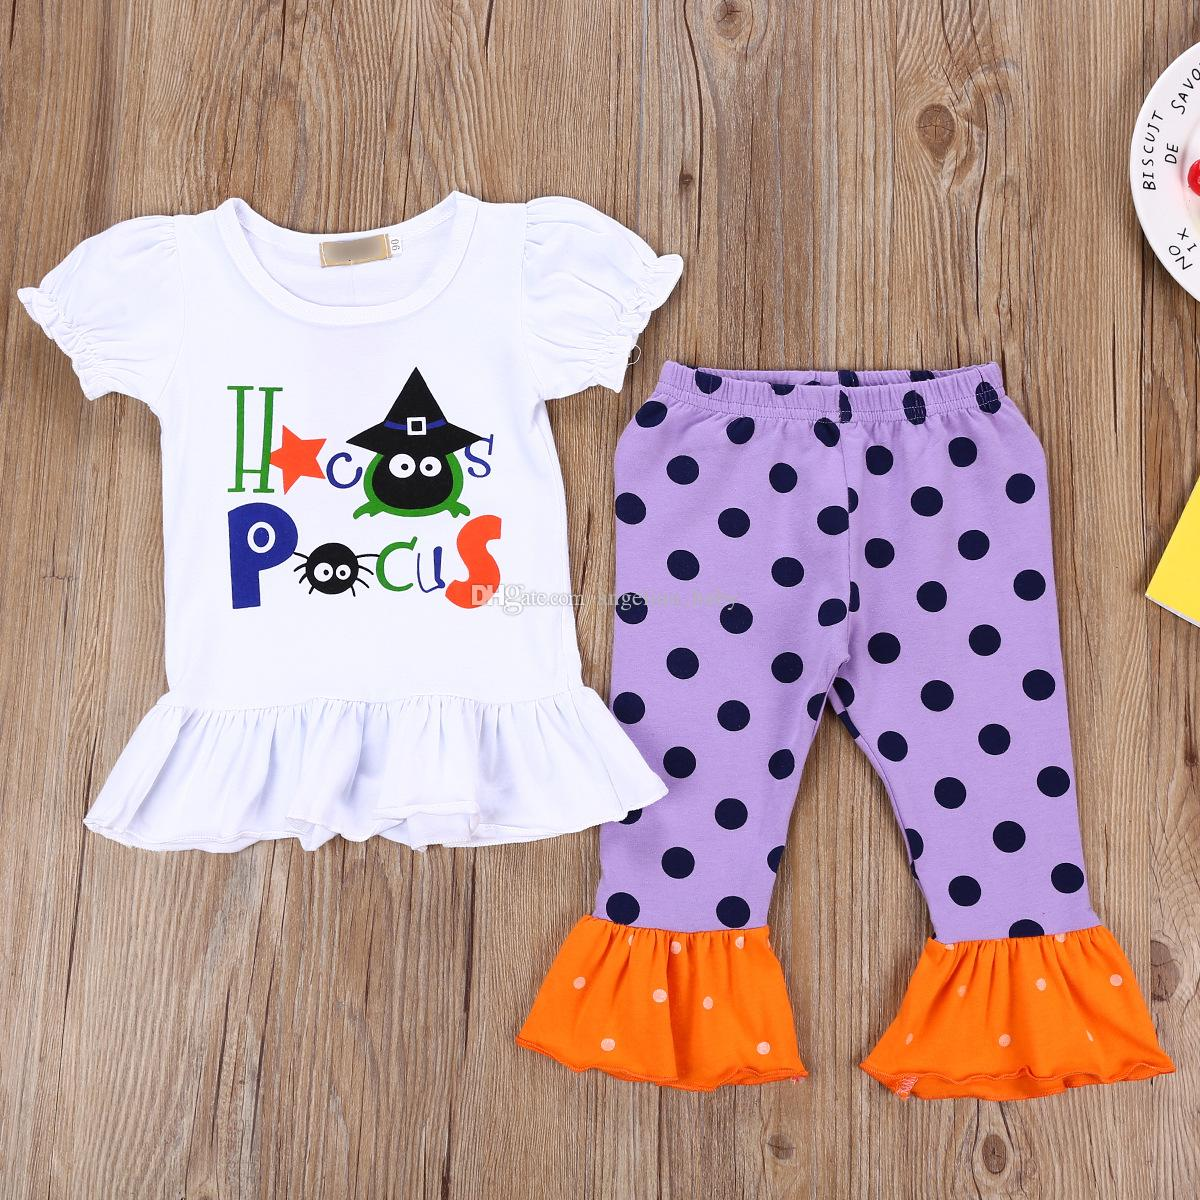 32fa0d7c5 2018 New Halloween Baby Girls Outfits Children Witch Print Top+Dot ...